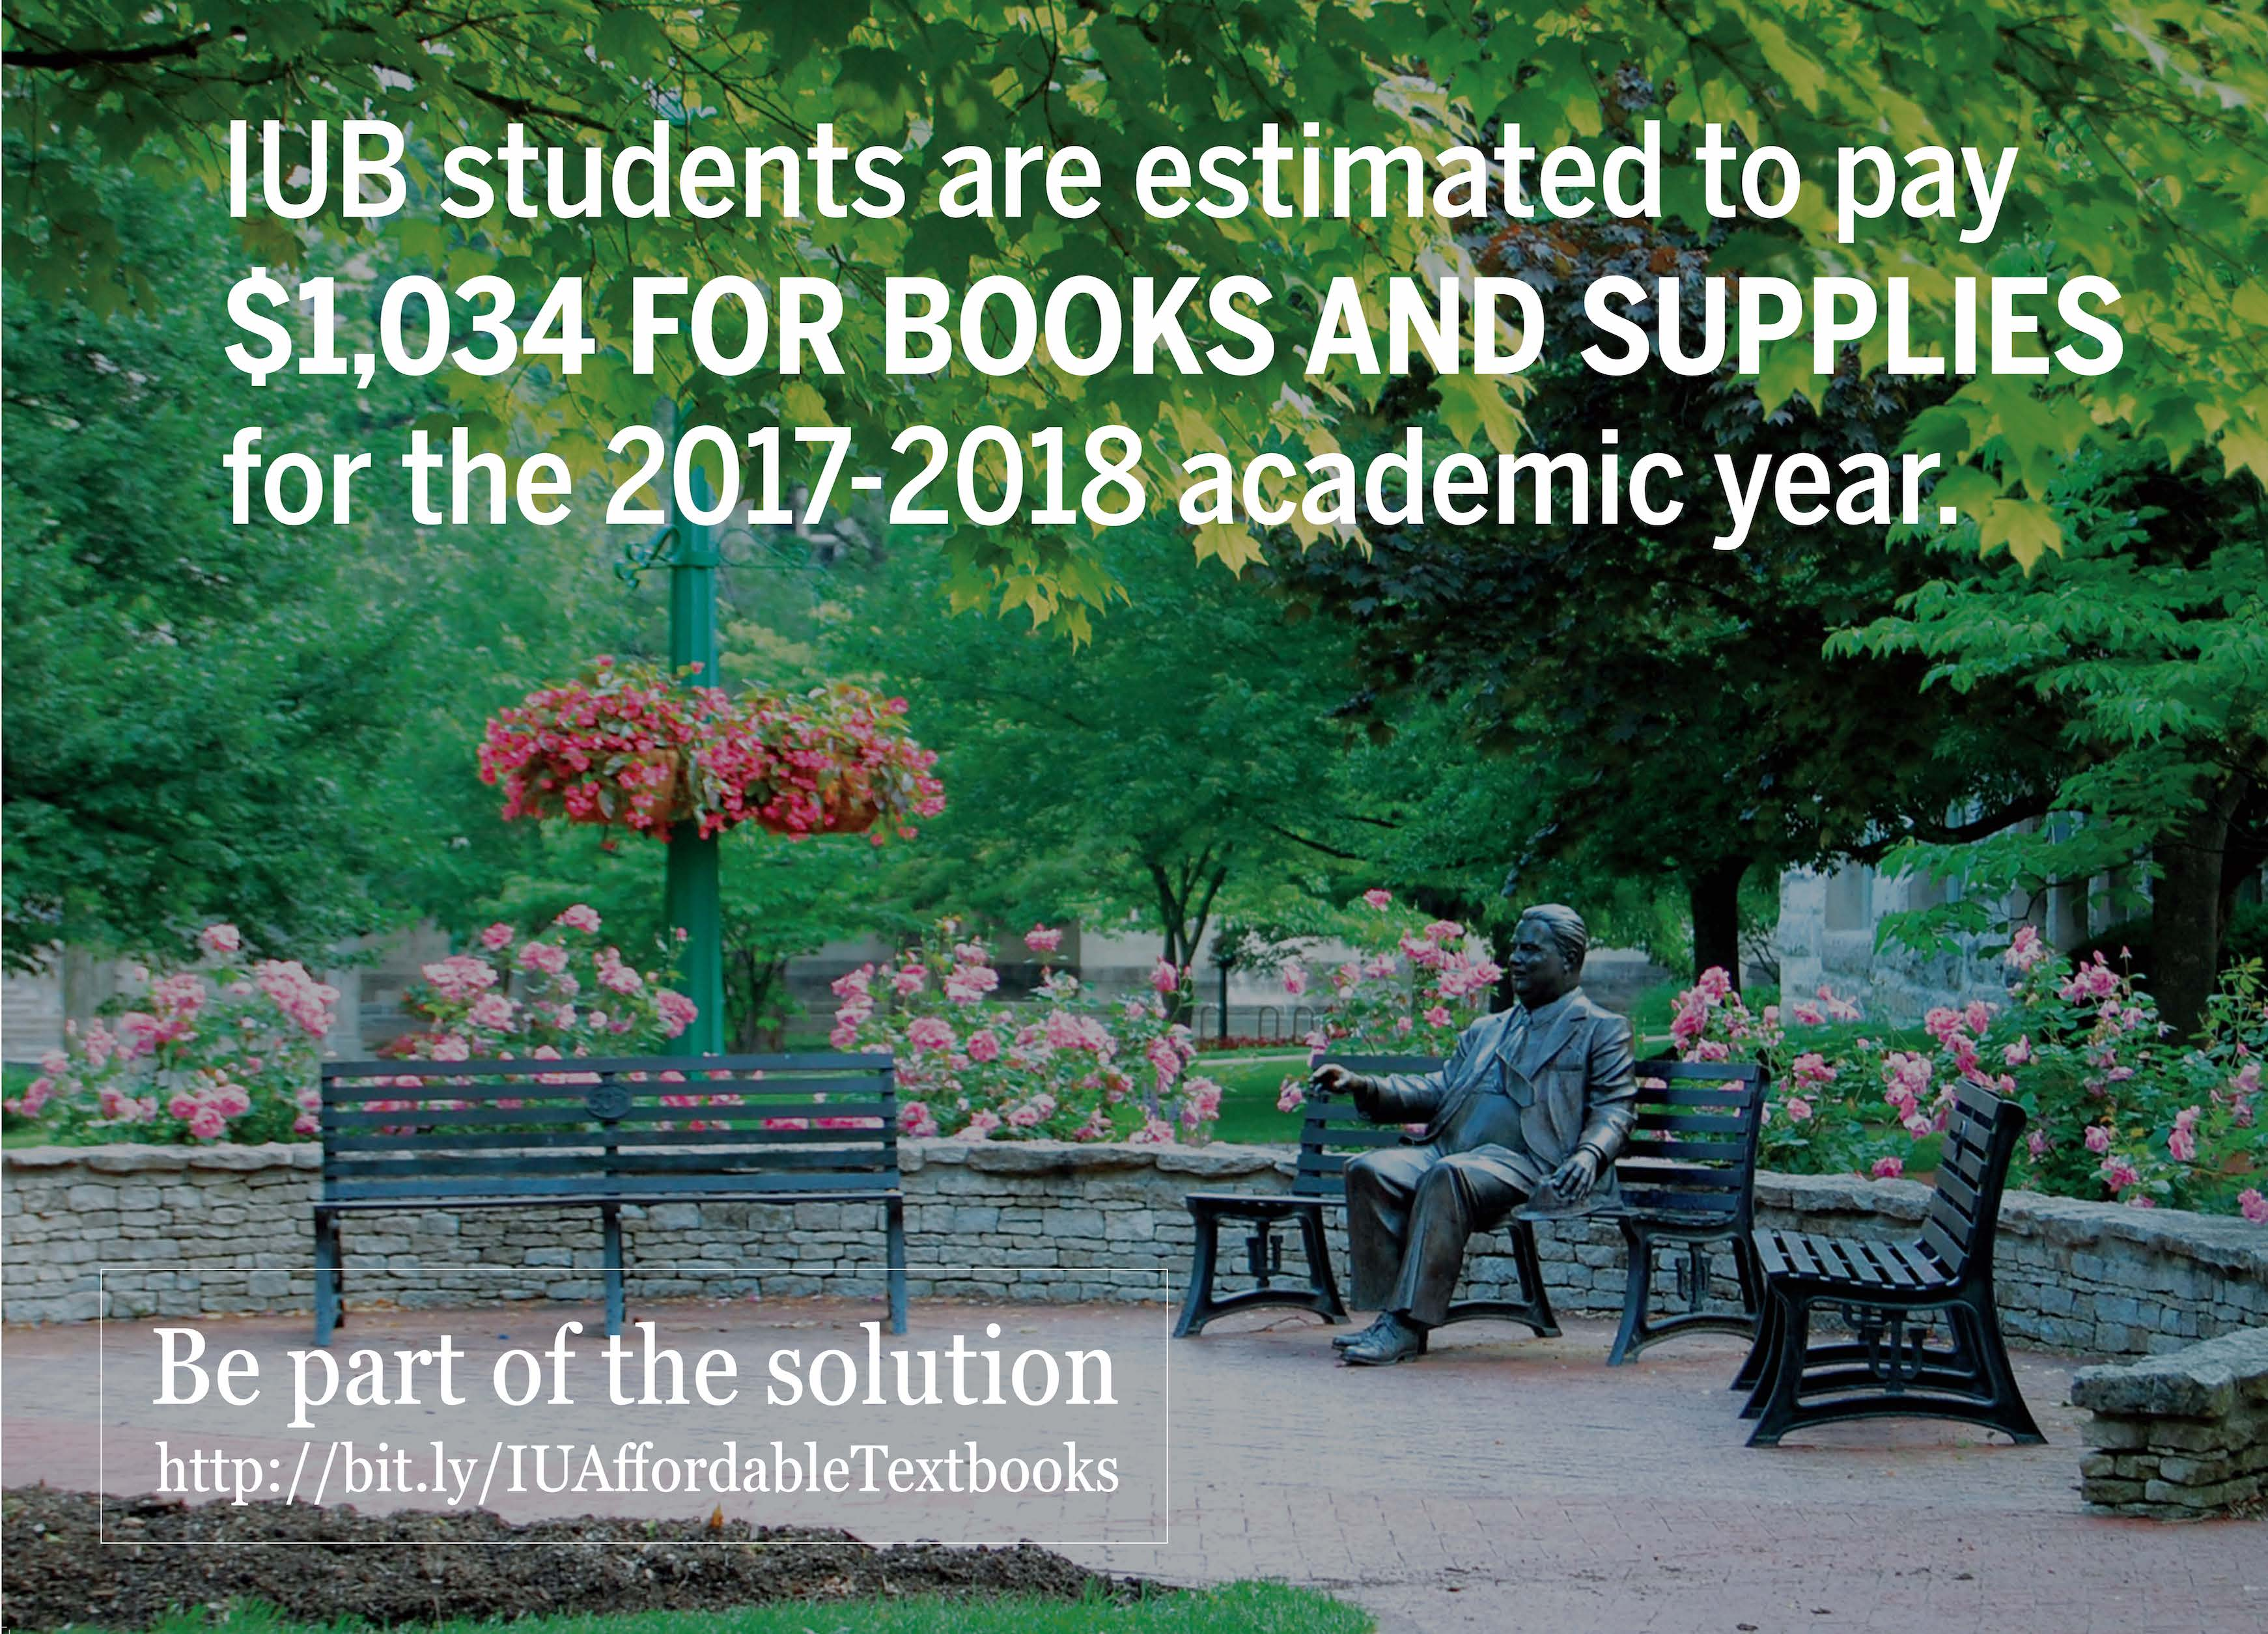 IUB students are estimated to pay $1,034 for books and supplies for the 2017-2018 academic year.  Be part of the solution: http://bit.ly/IUAffordableTextbooks